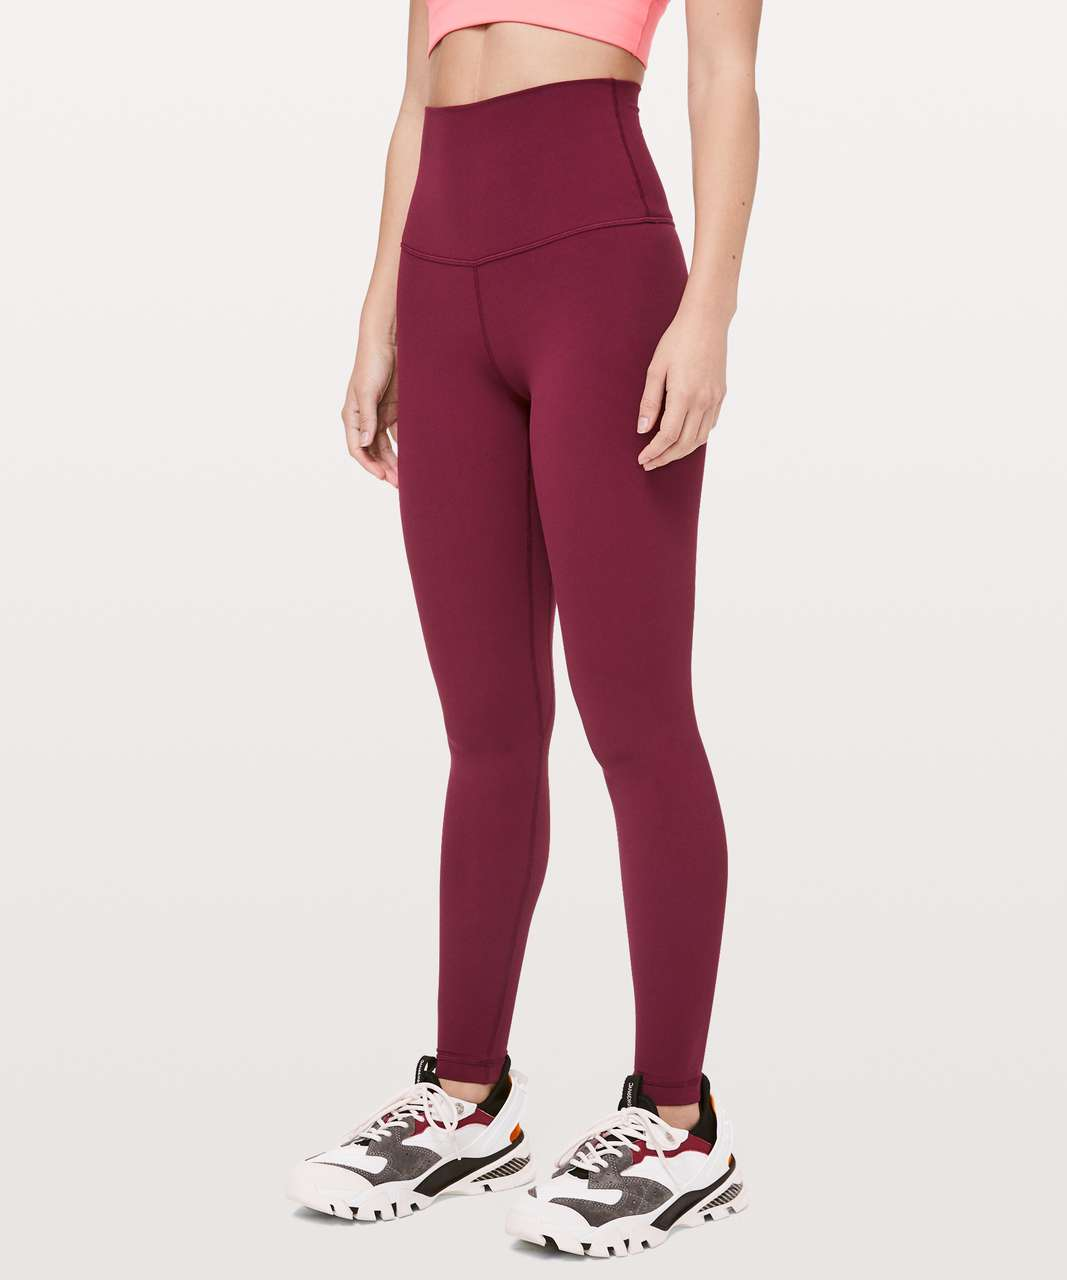 "Lululemon Align Pant Super High-Rise 28"" - Deep Ruby"